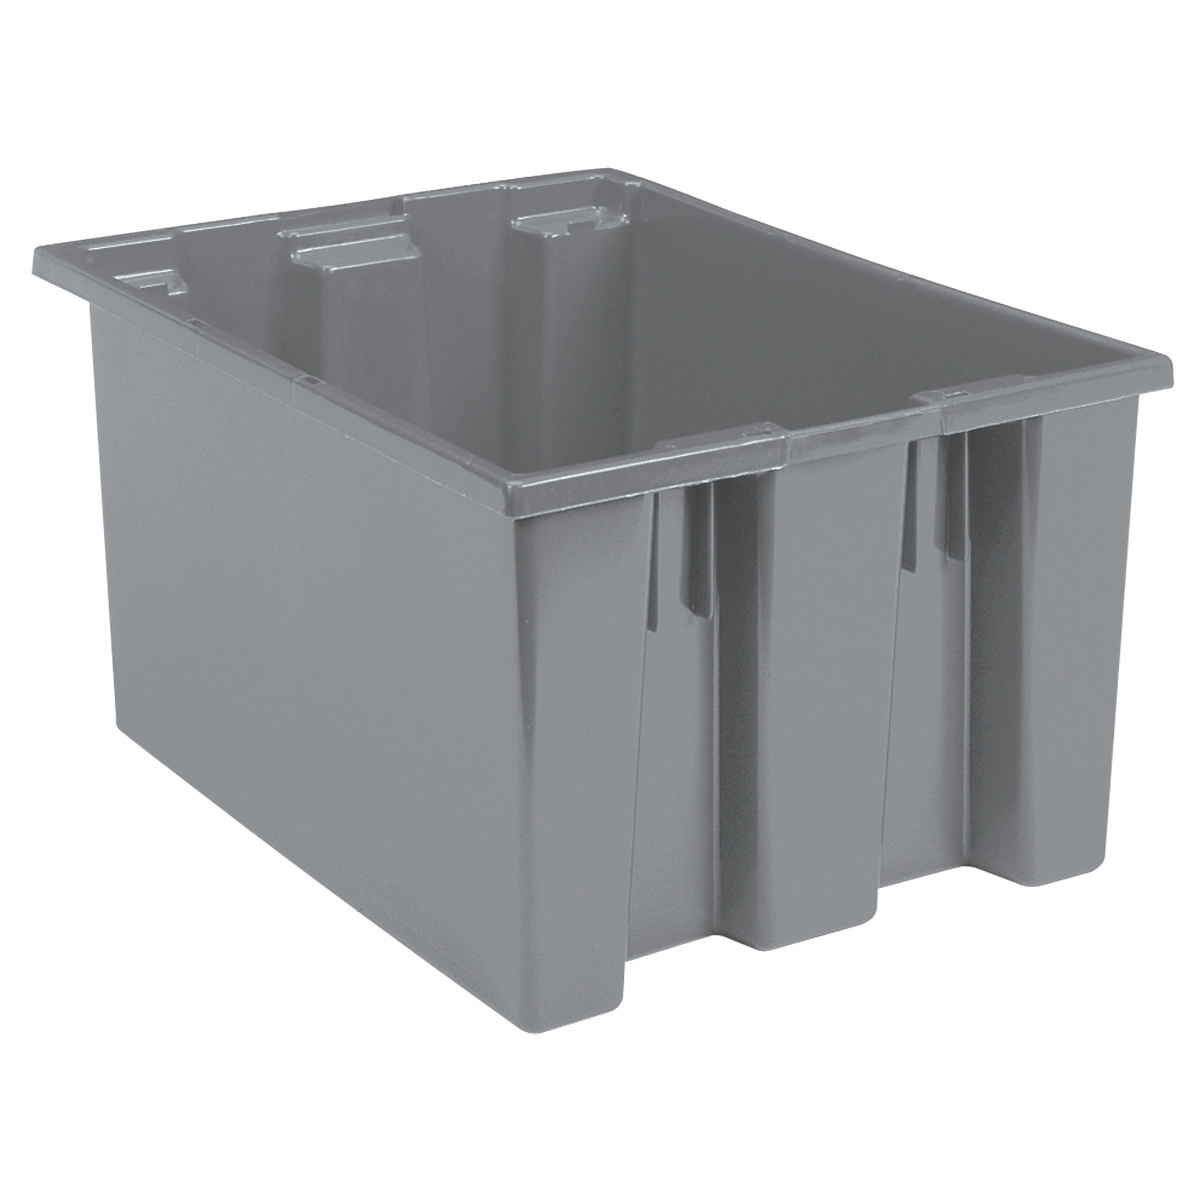 Nest & Stack Tote 23-1/2 x 19-1/2 x 13, Gray (35230GREY).  This item sold in carton quantities of 3.